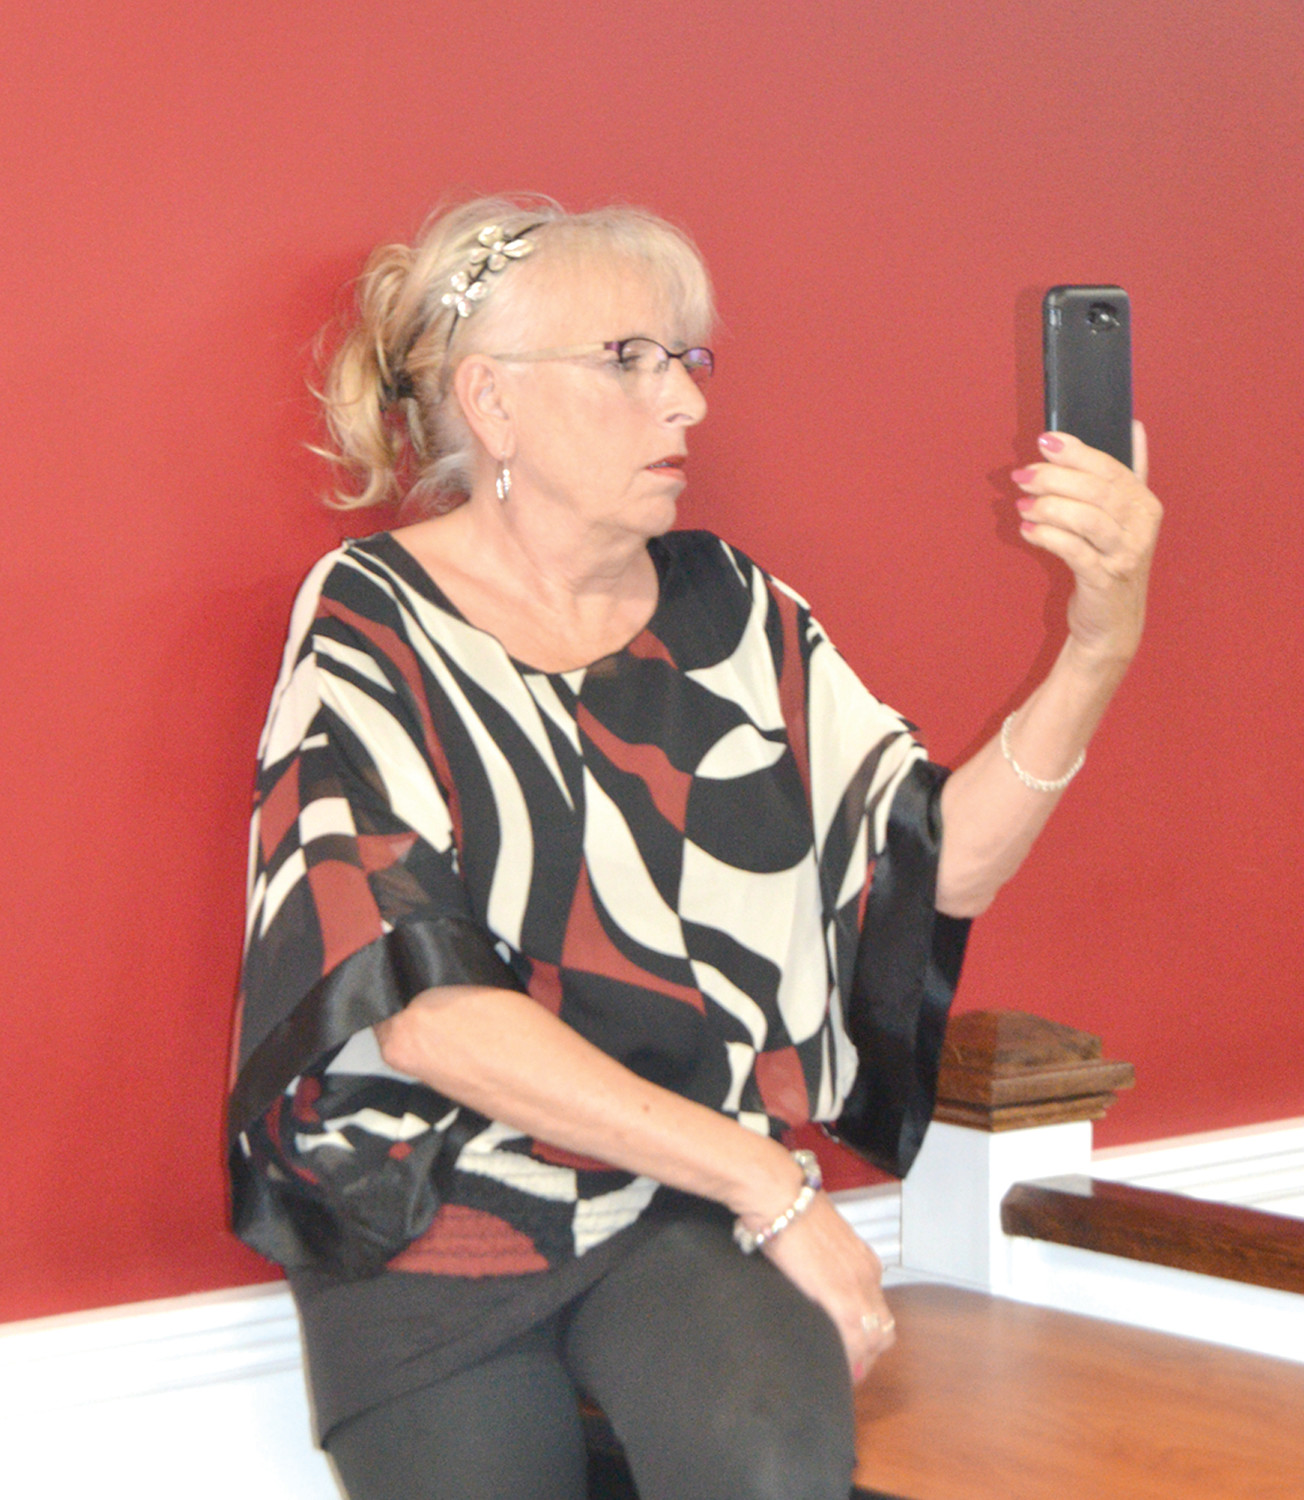 ON THE RECORD: Former Councilwoman Eileen Fuoco records the Town Council meeting as the Mayor's indemnification was discussed.